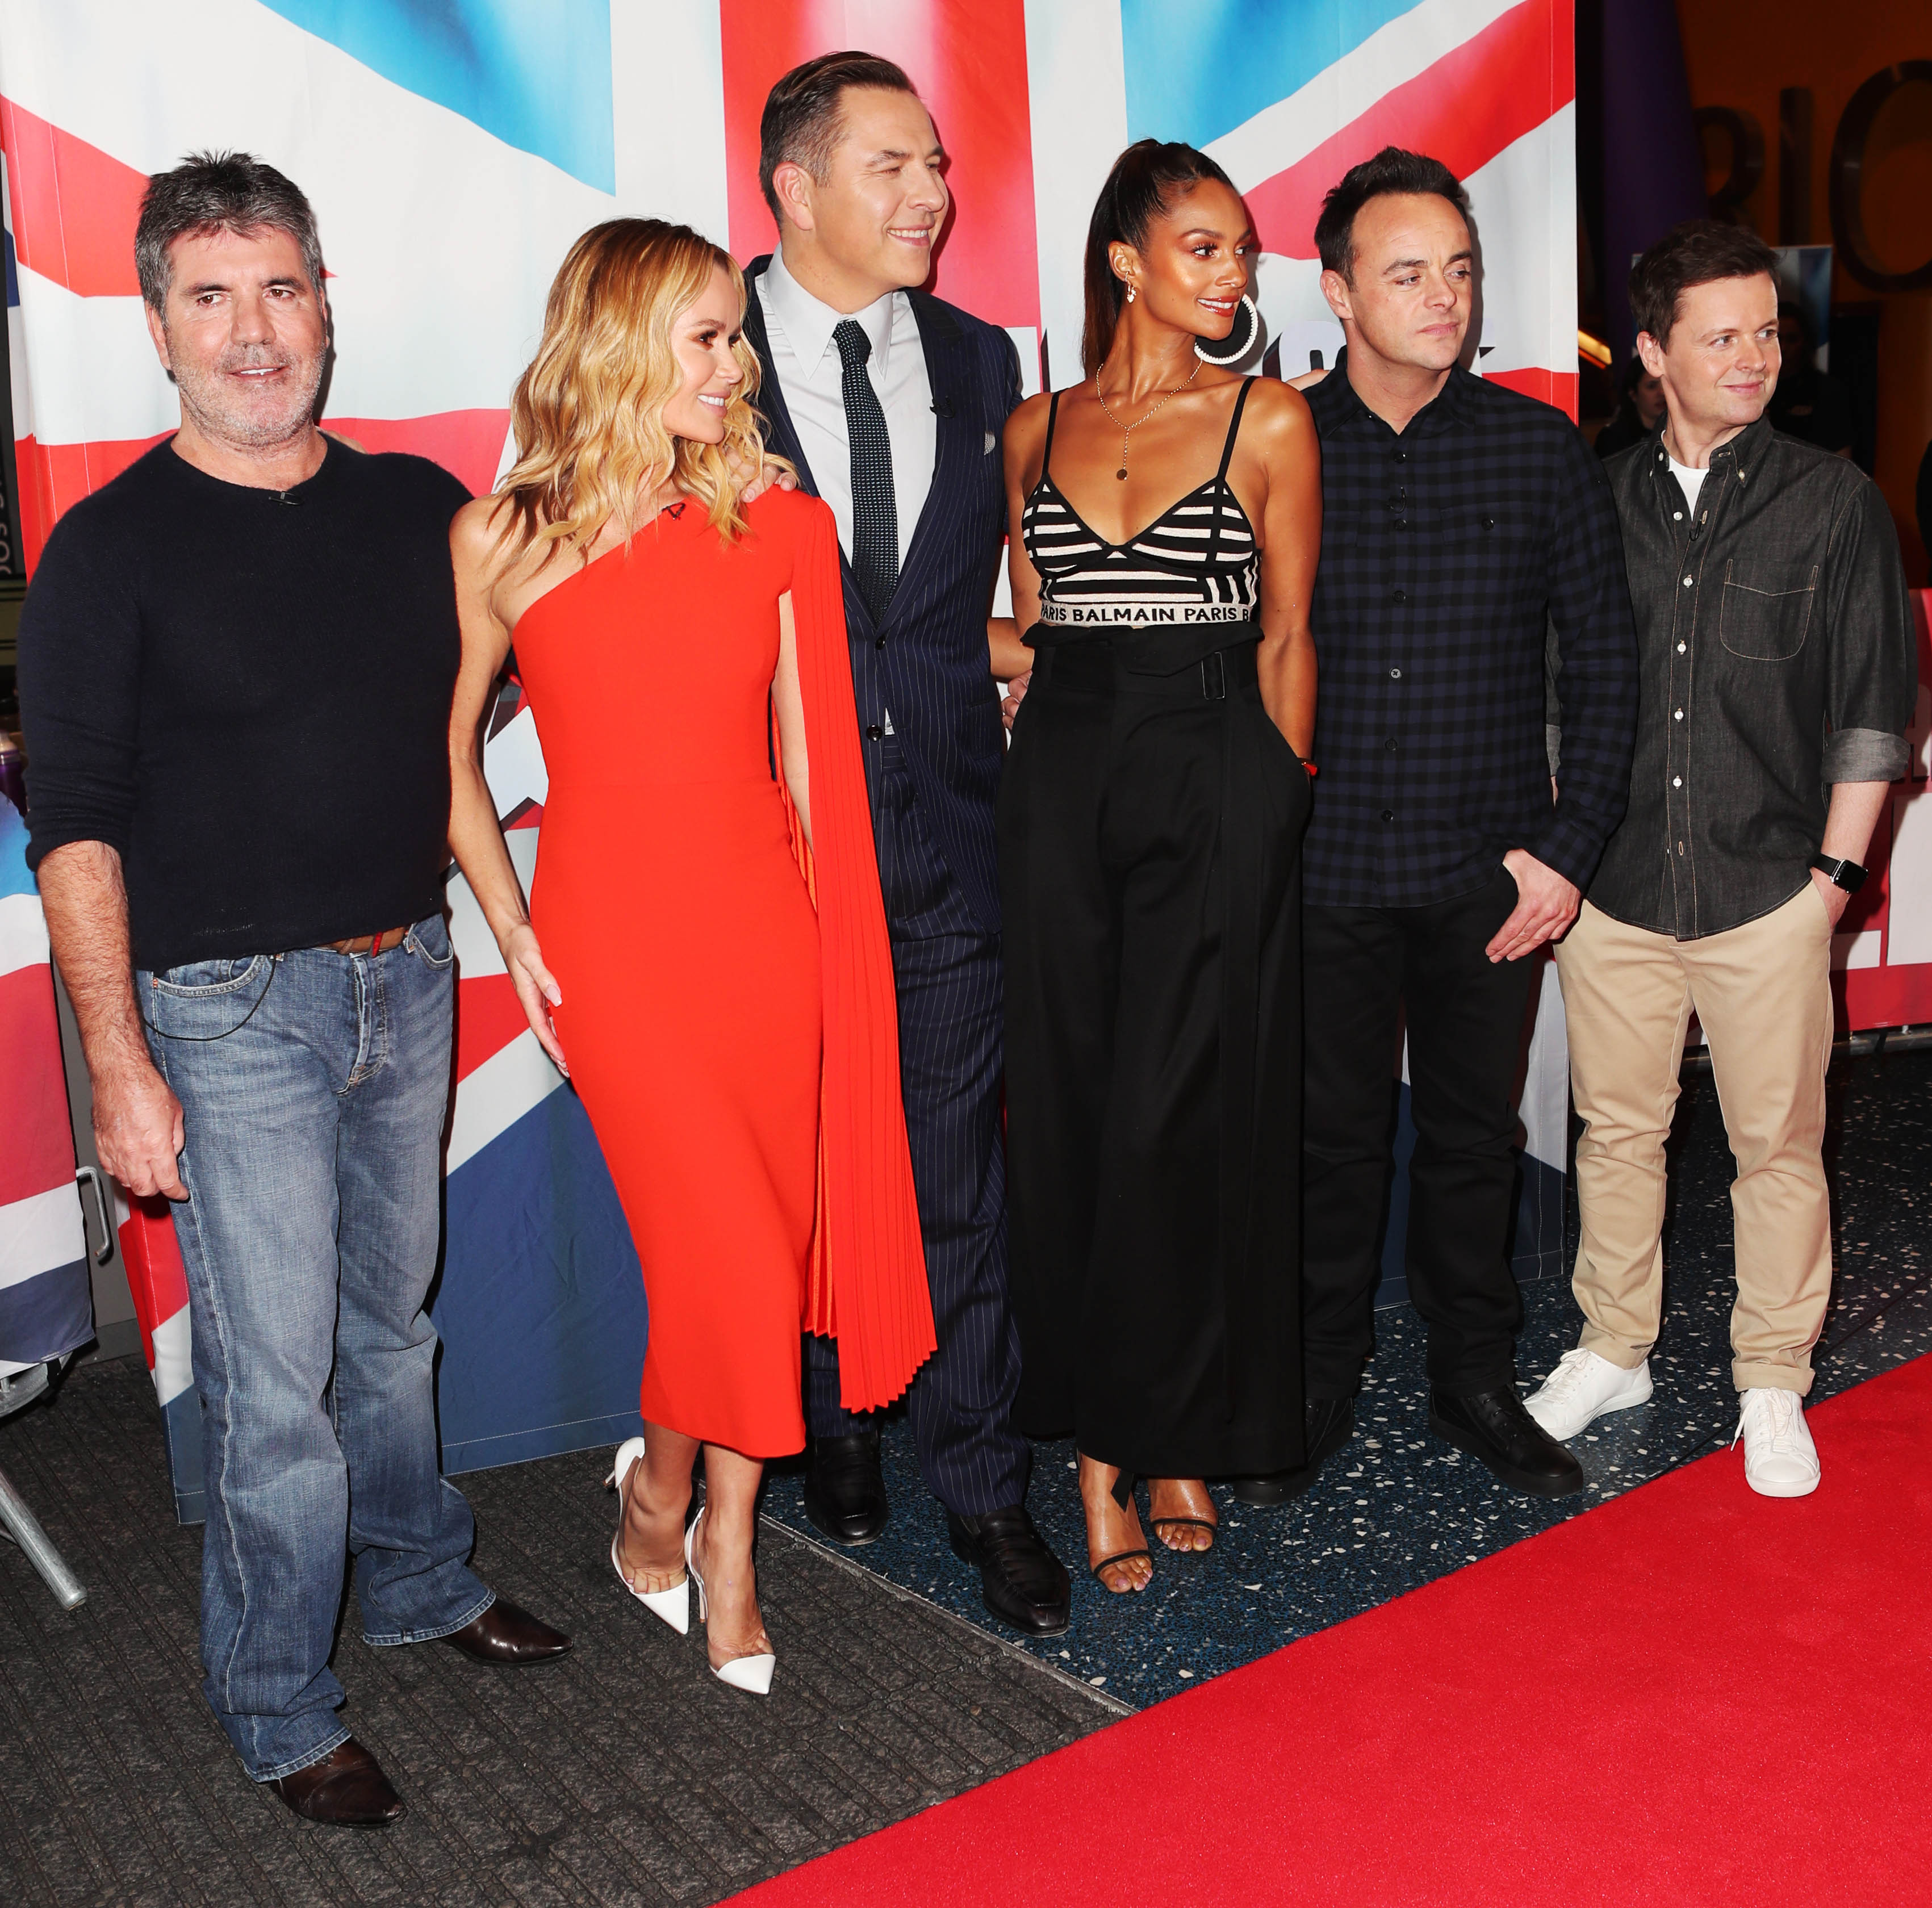 Simon Cowell,Amanda Holden,David Walliams,Alesha Dixon,Ant McPartlin,Declan Donnelly at BGT auditions